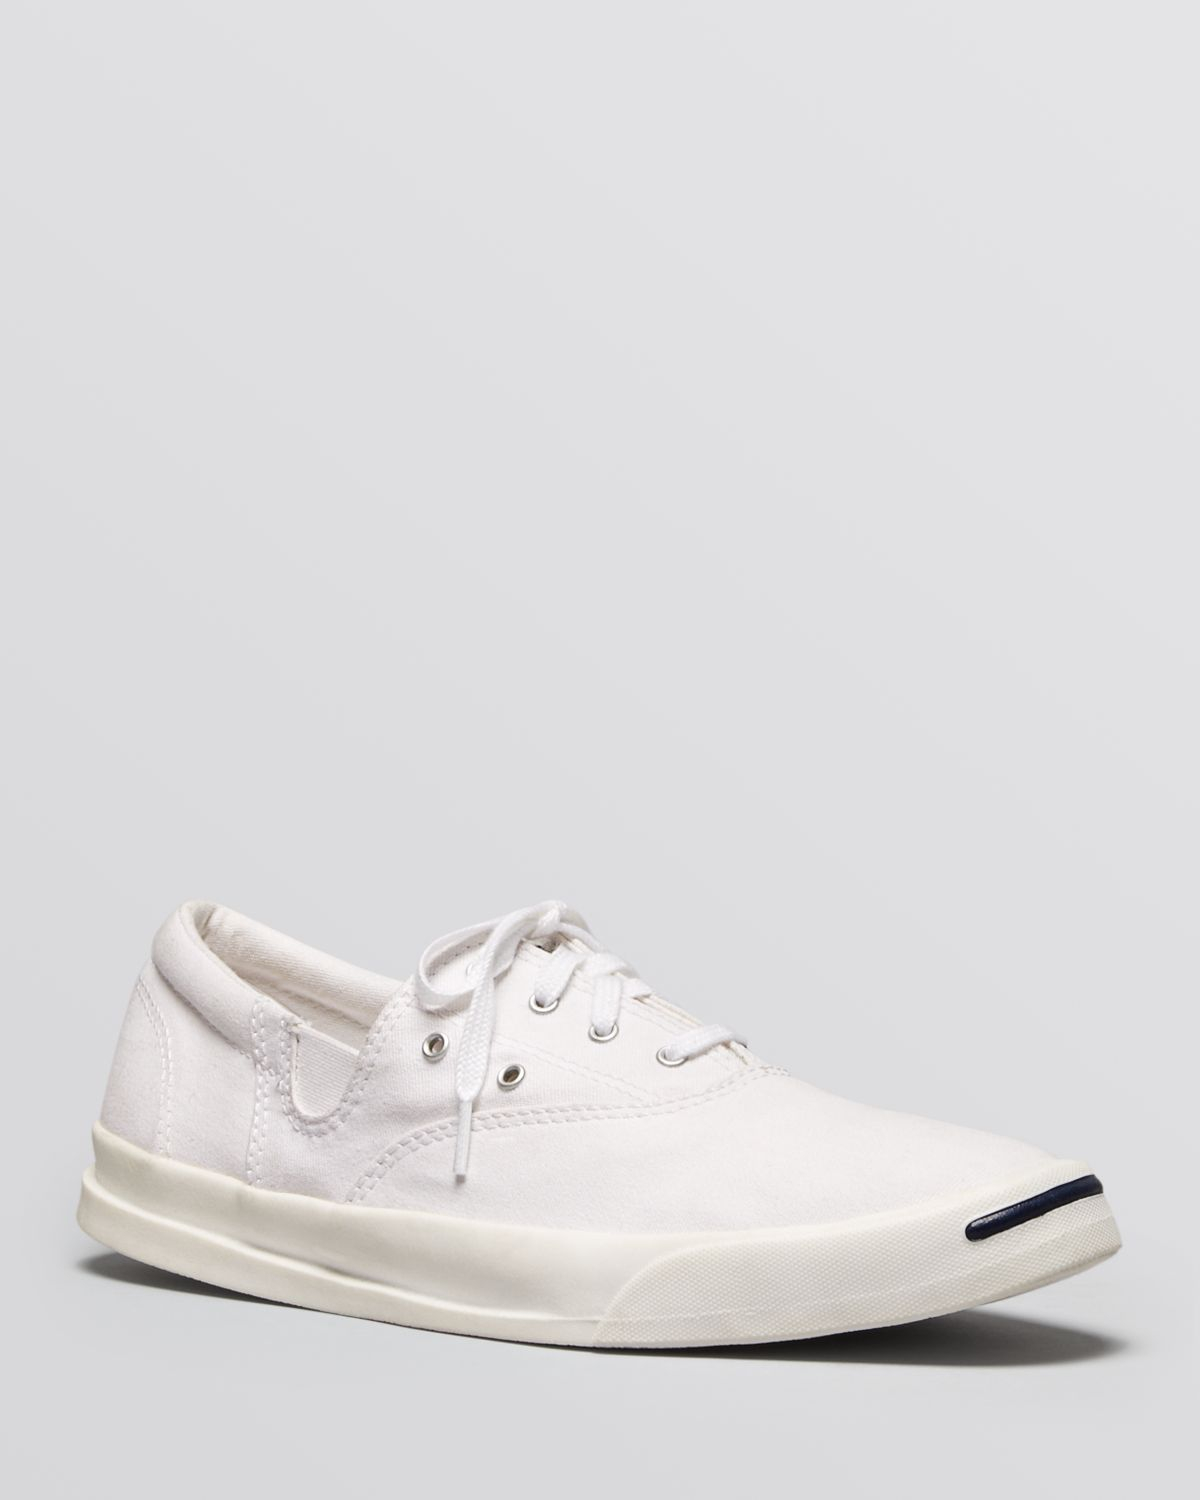 3ce6bd03a10326 Lyst - Converse Jack Purcell Jeffrey Cvo Sneakers in White for Men